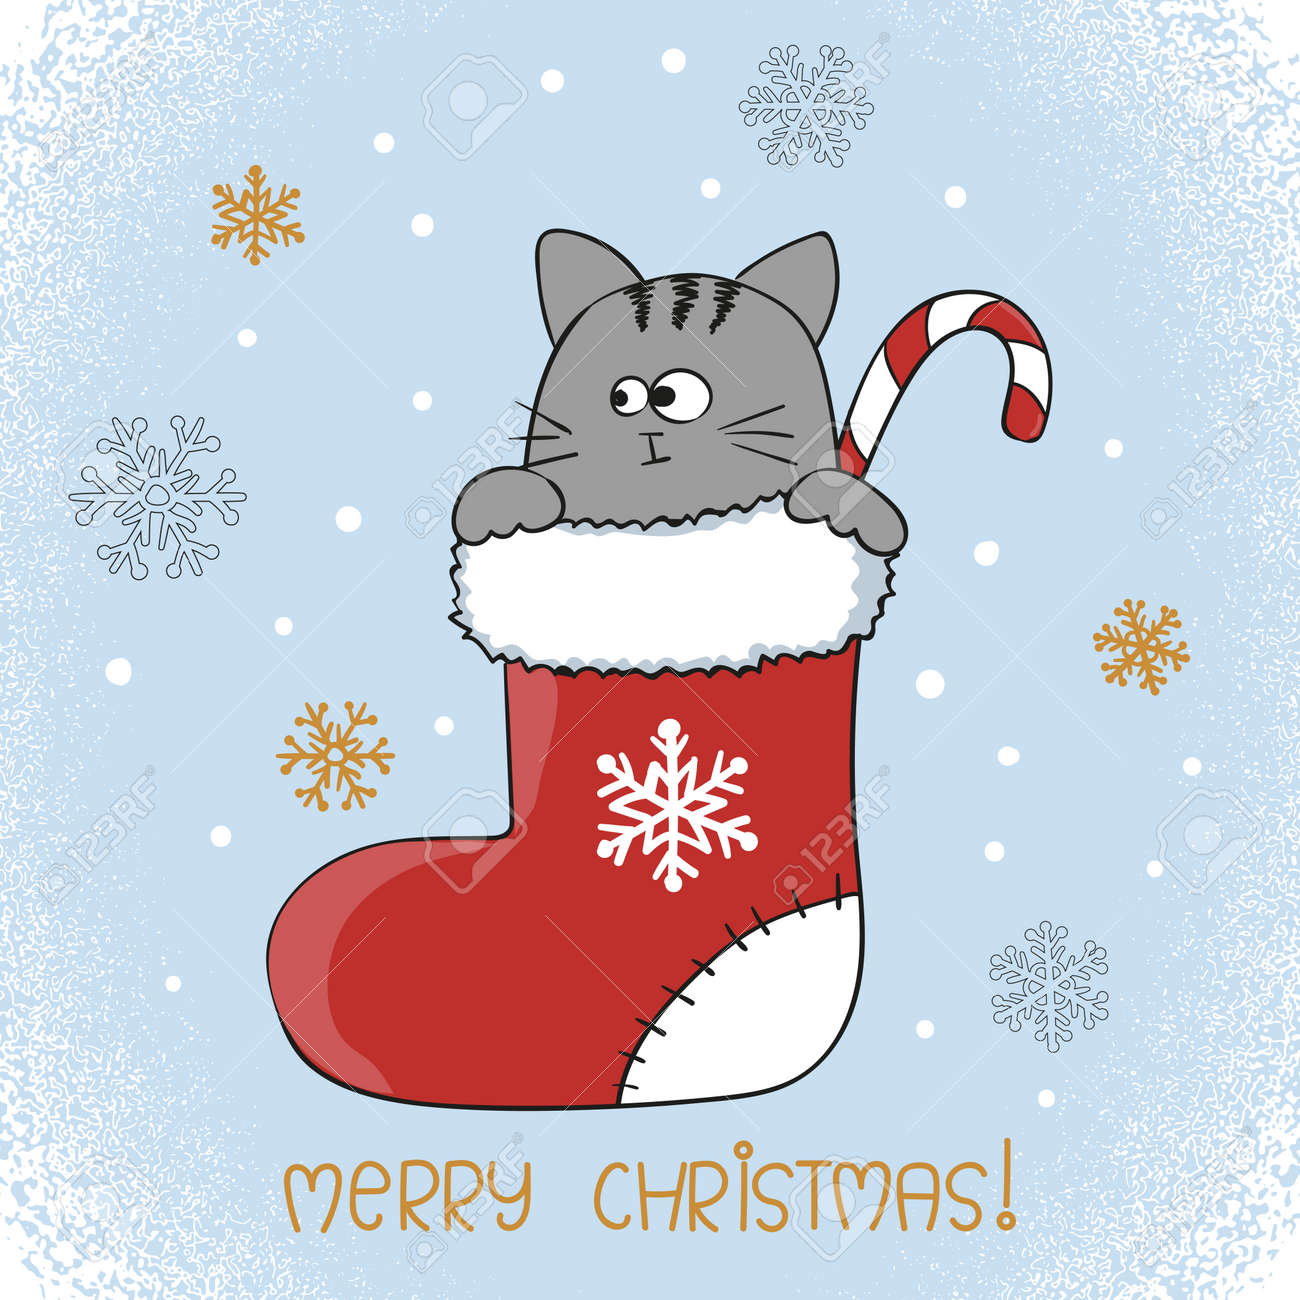 Merry Christmas card design. Cute cat in a Christmas stocking